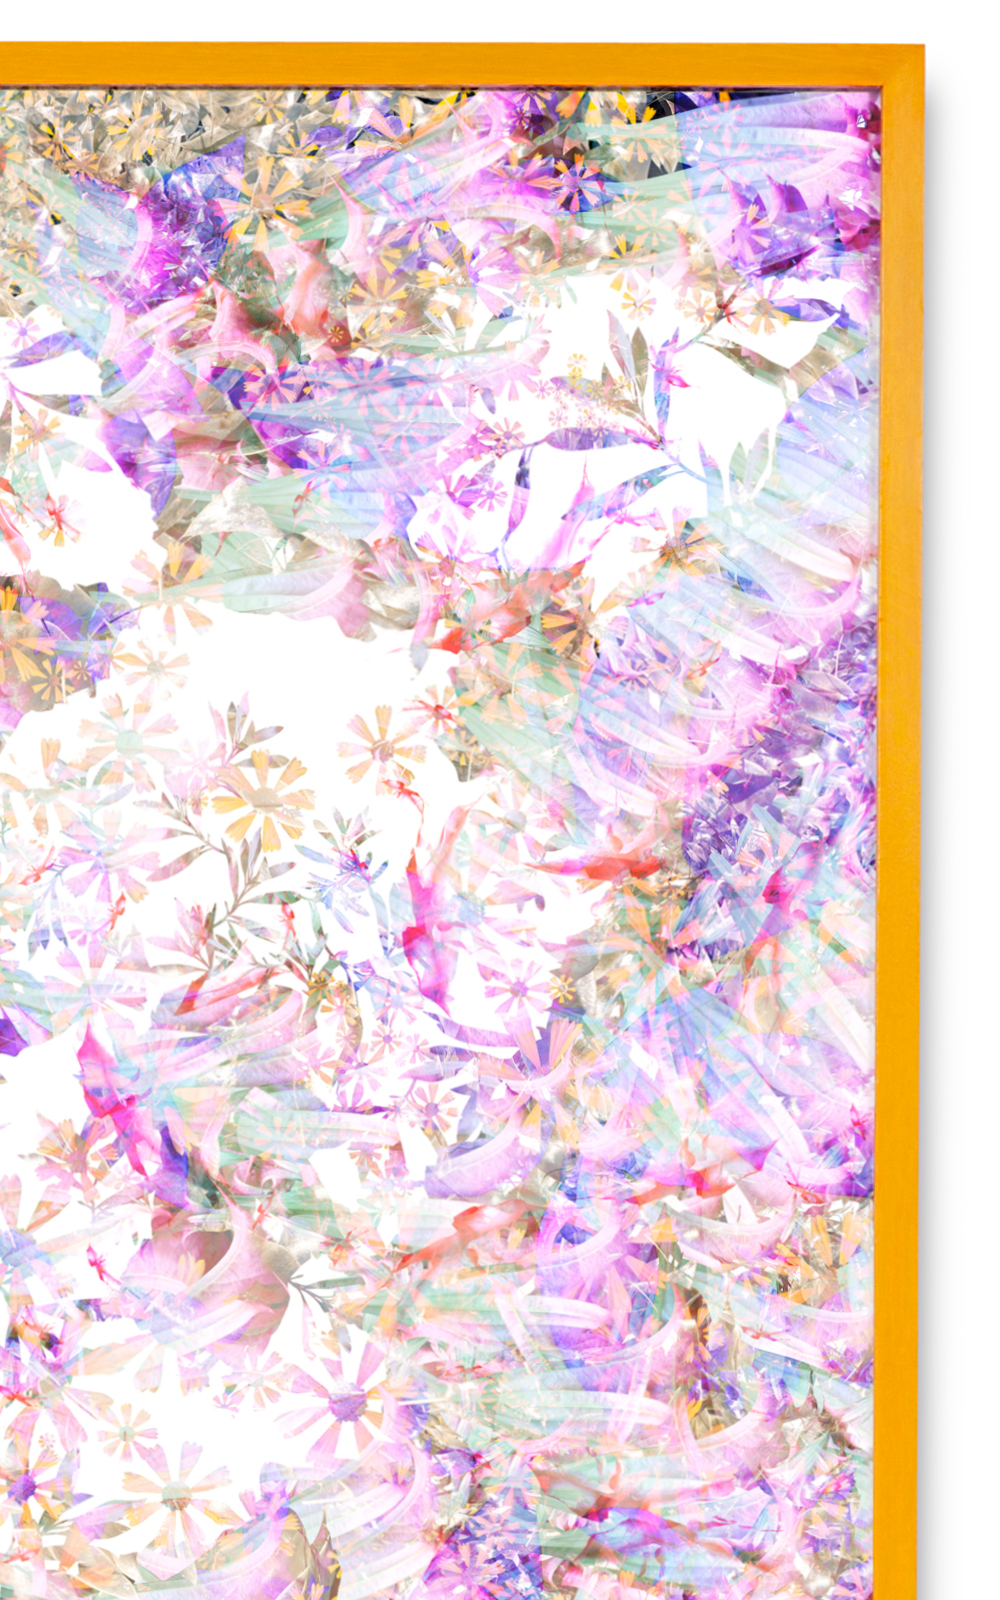 Case Simmons, Simmons & Burke, Angel Tears, Still Lives and Common Names, Metallic Print, Digital Collage,Digital Art, Photoshop Collage, Contemporary Collage,Case Simmons Art, Collage Fine Art, Abstract Digital Collage, Kohn Gallery